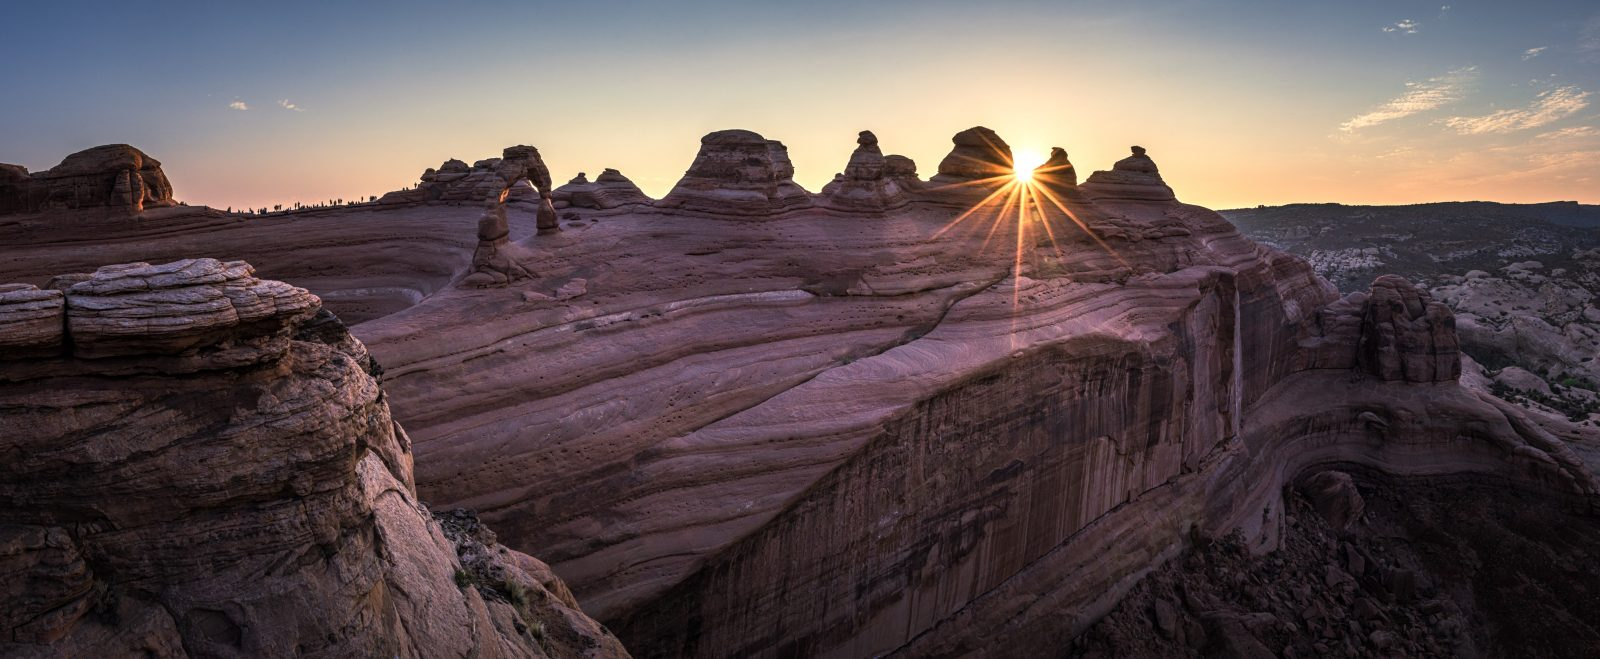 A new day at Delicate Arch